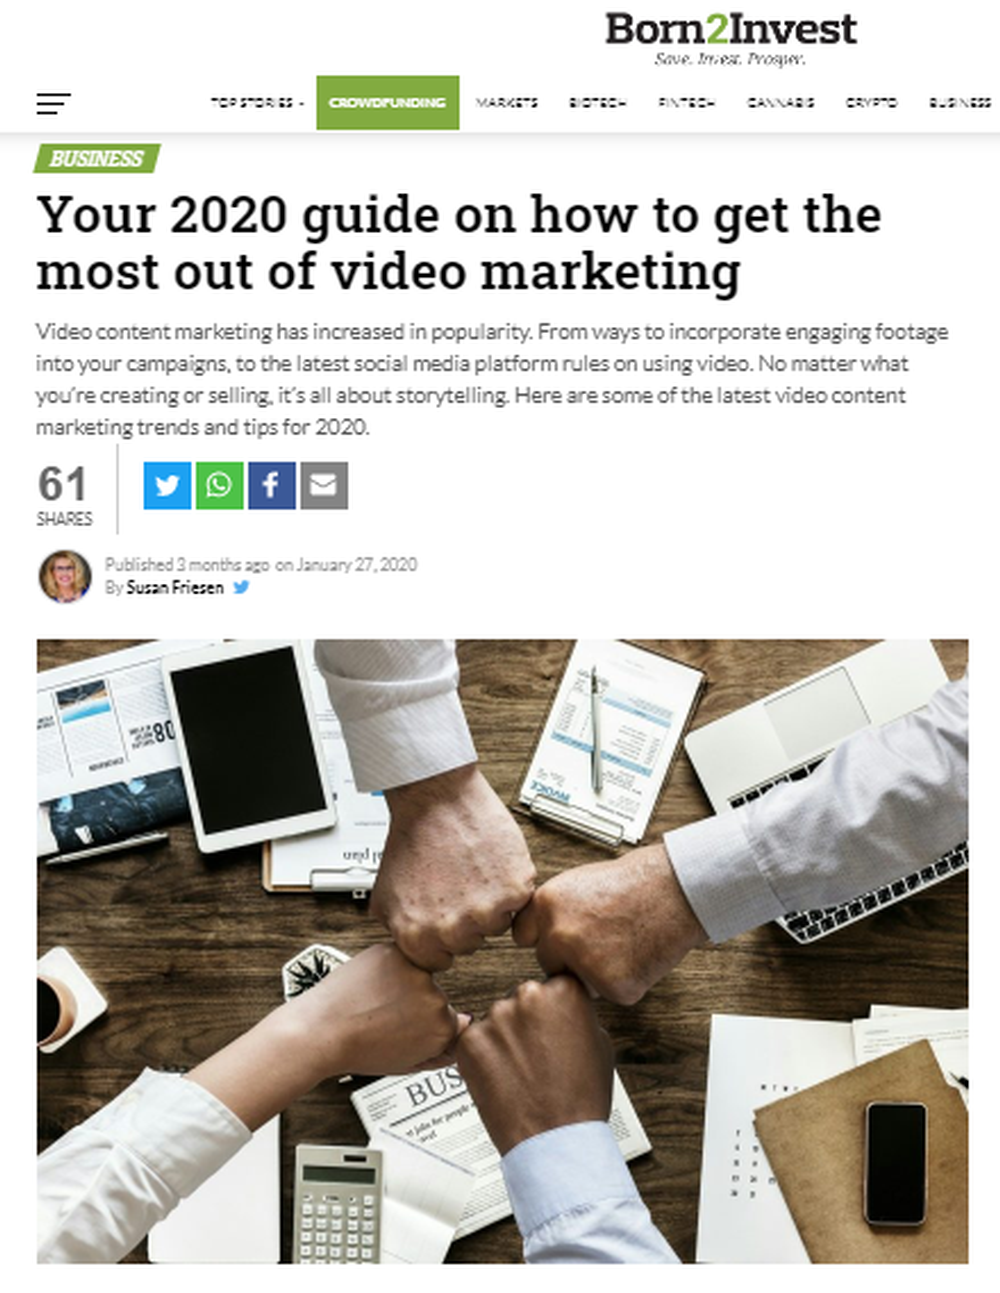 Your 2020 guide on how to get the most out of video marketing.png